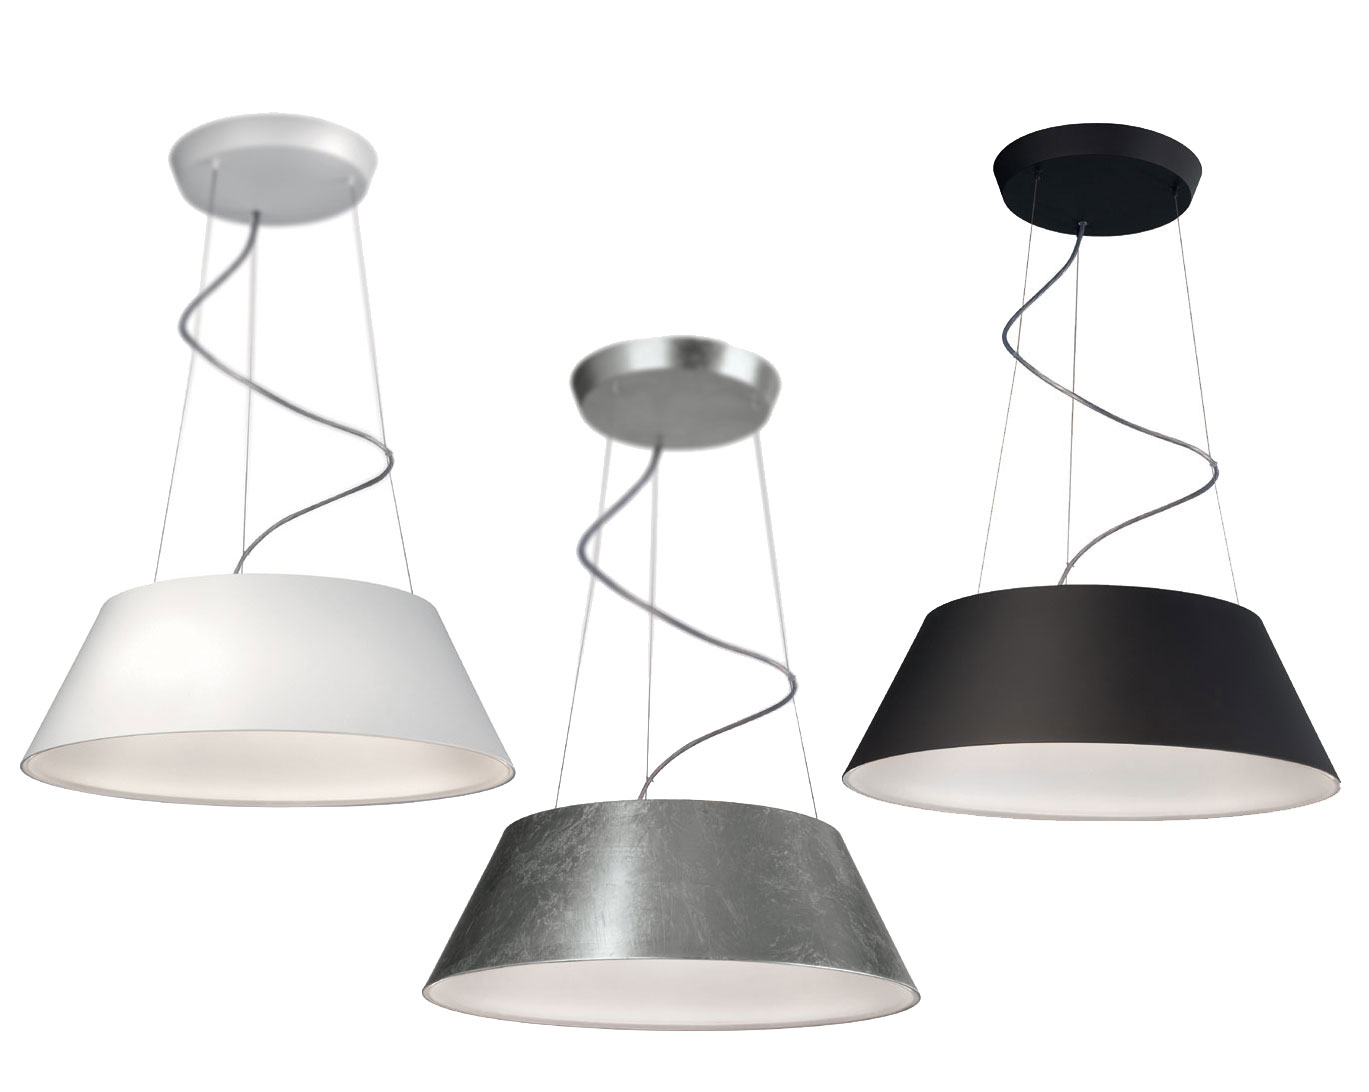 Ceiling hanging lights philips ceiling designs ceiling hanging lights philips energywarden net aloadofball Images